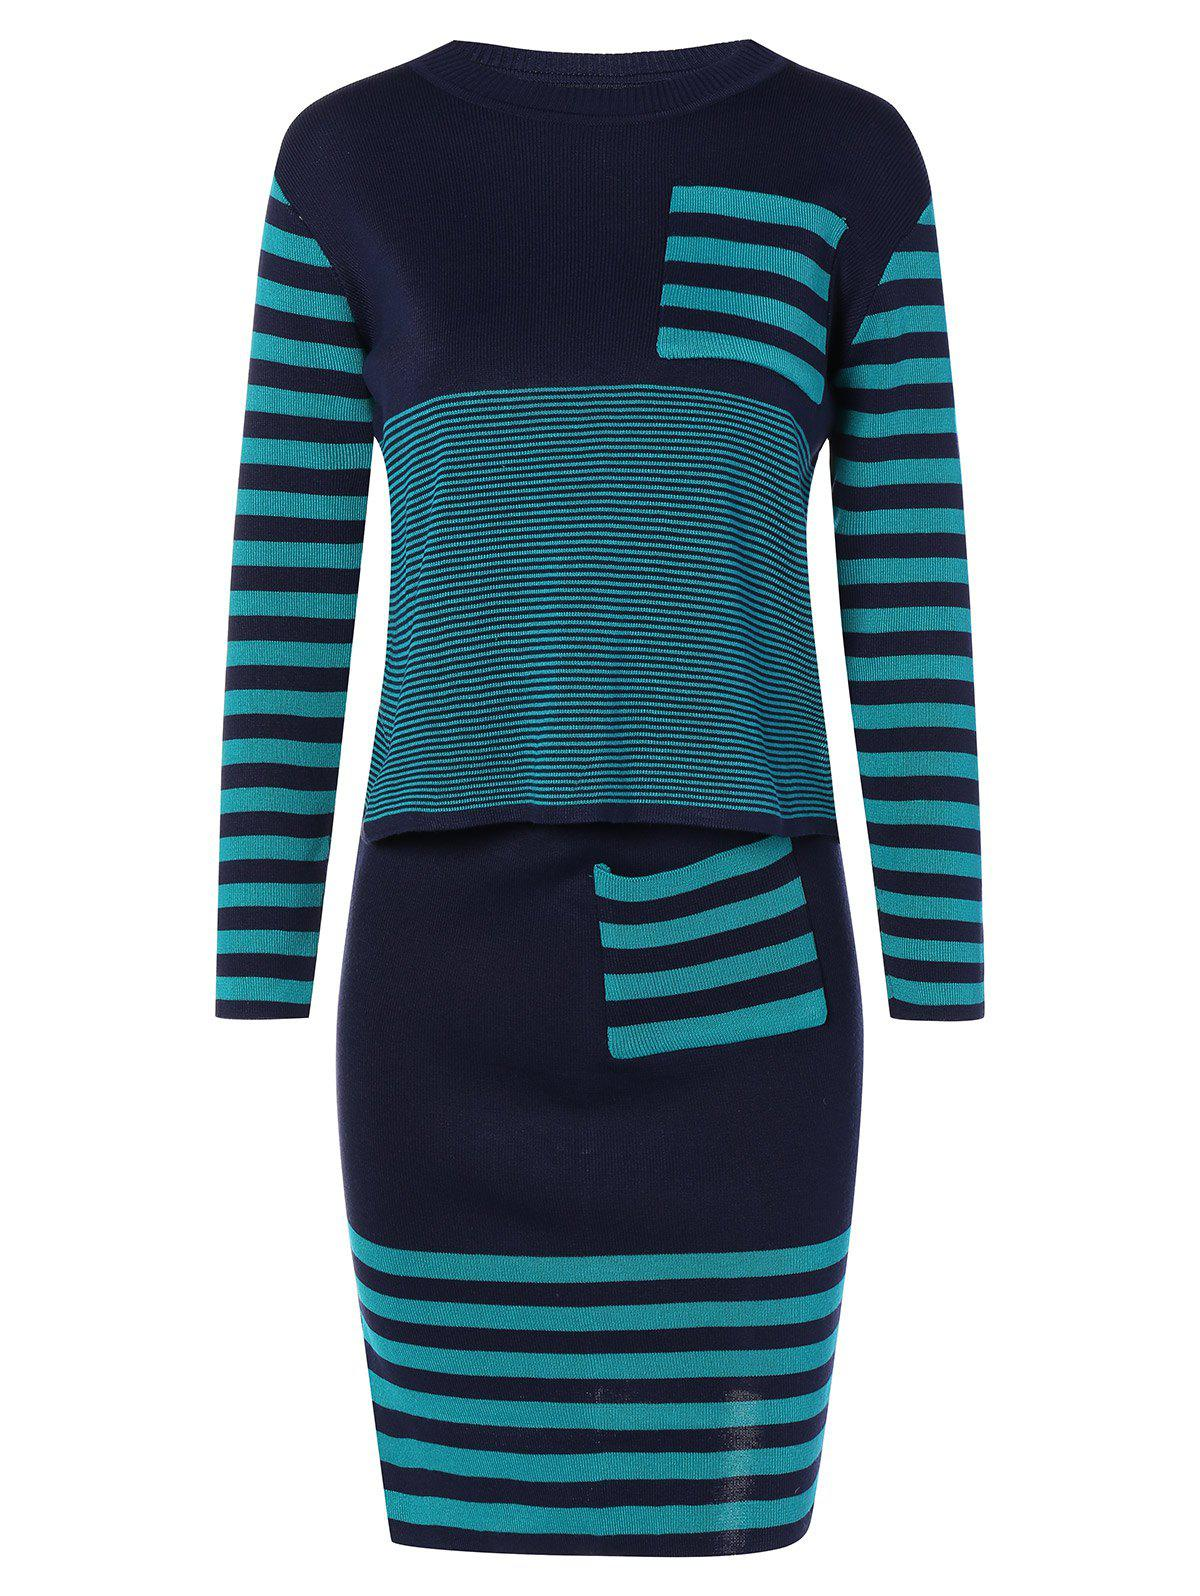 Striped Knitwear and Slit Skirt Twinset - BLUE ONE SIZE